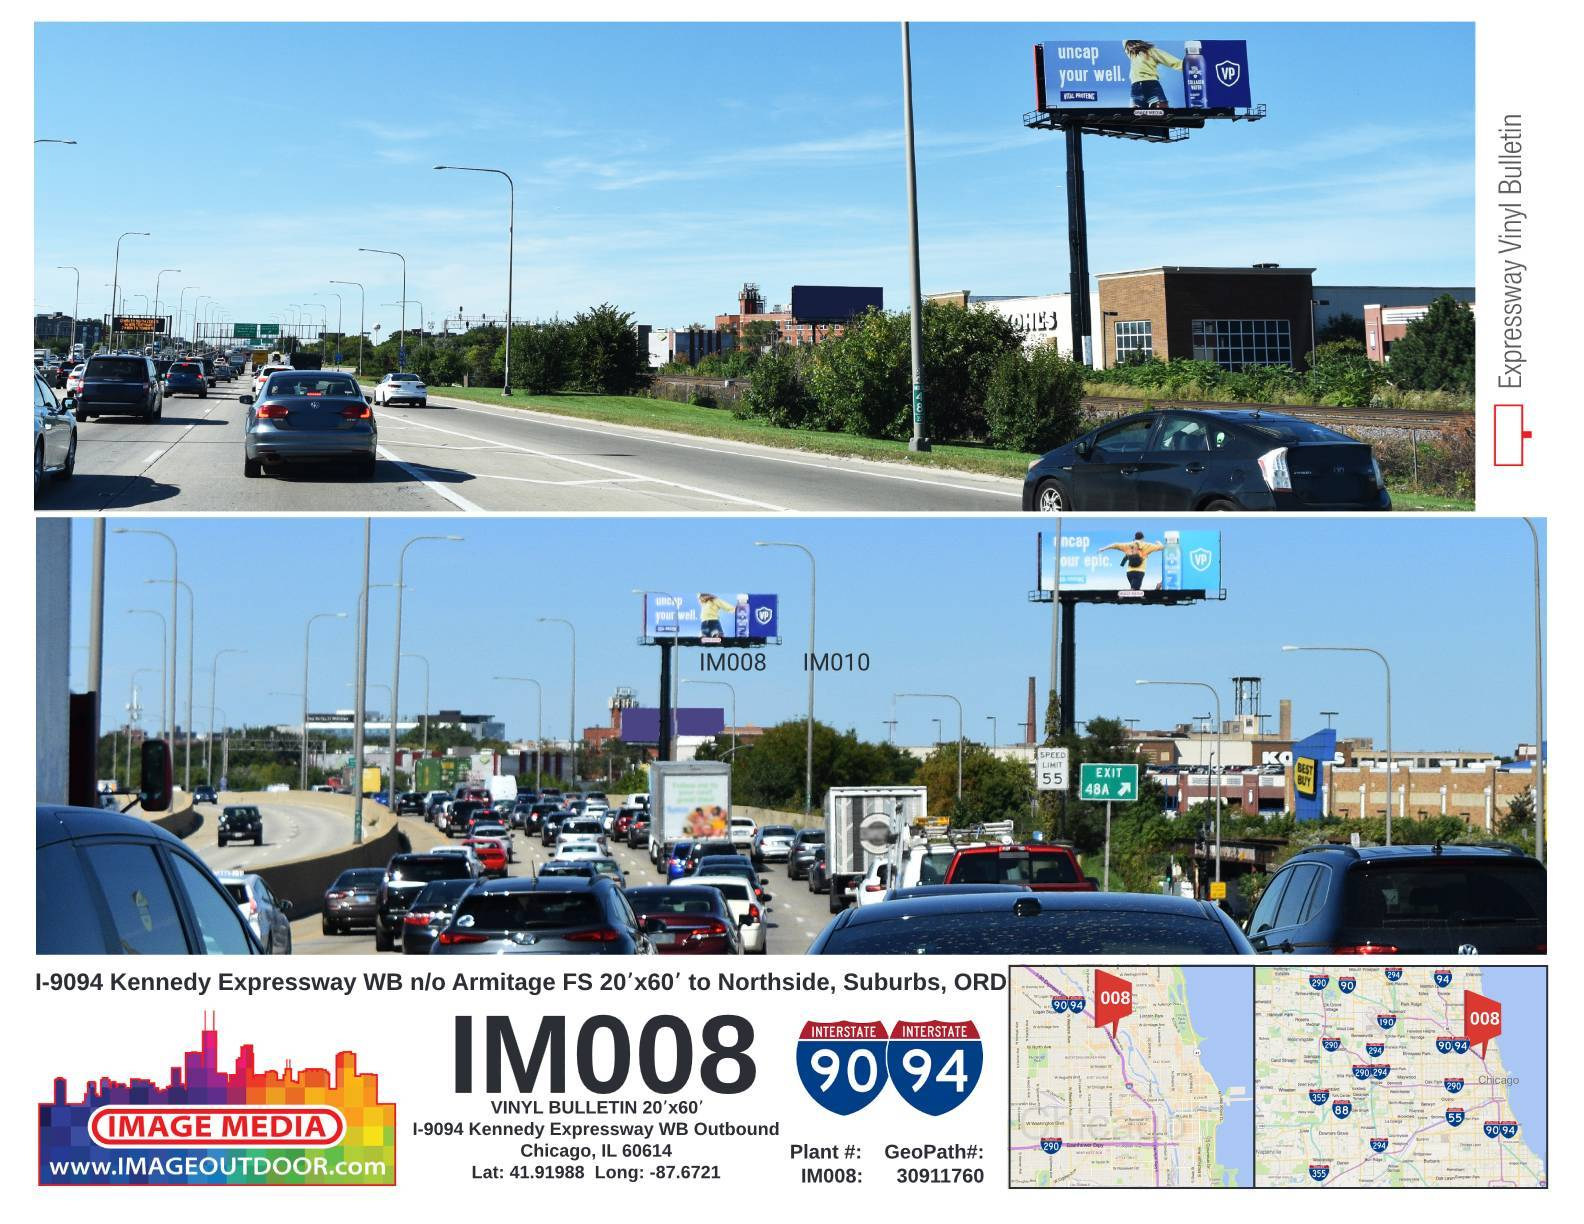 IM008 BULLETIN i9094 Kennedy Expressway Westbound Outbound FS IMAGE MEDIA OUTDOOR K